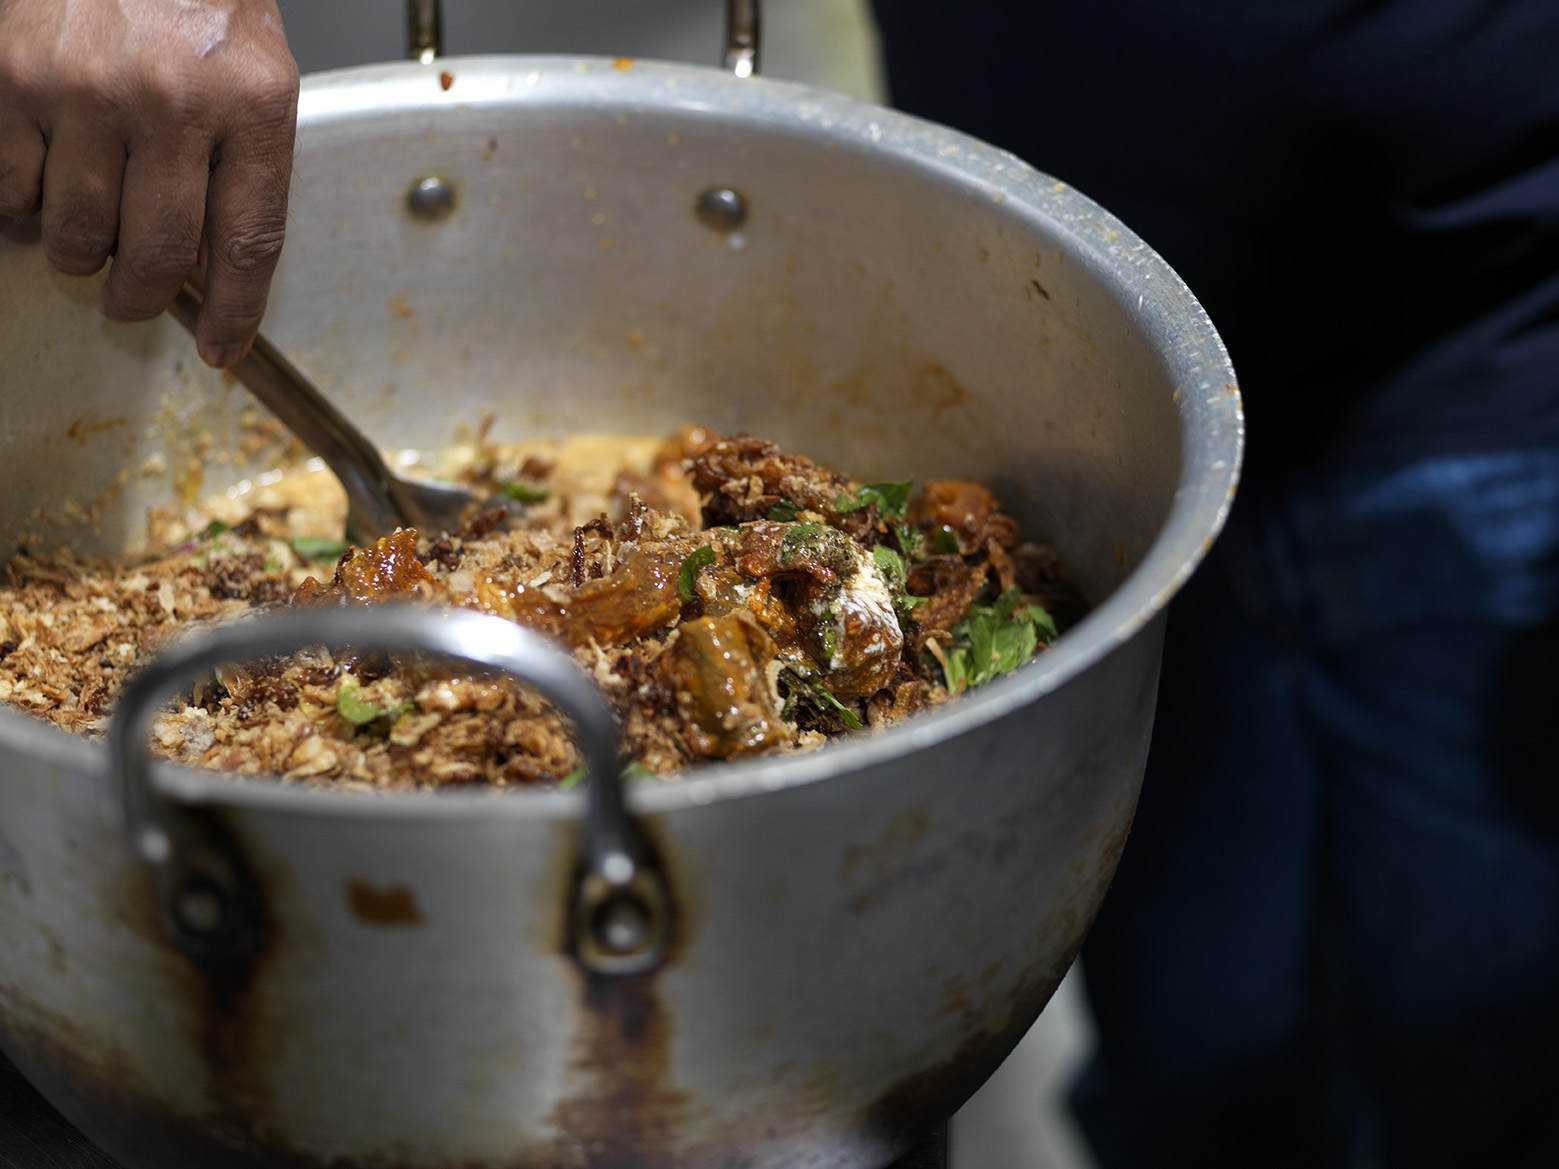 25+ ingredients including diced goat meat are cooked together using the traditional biryani method.